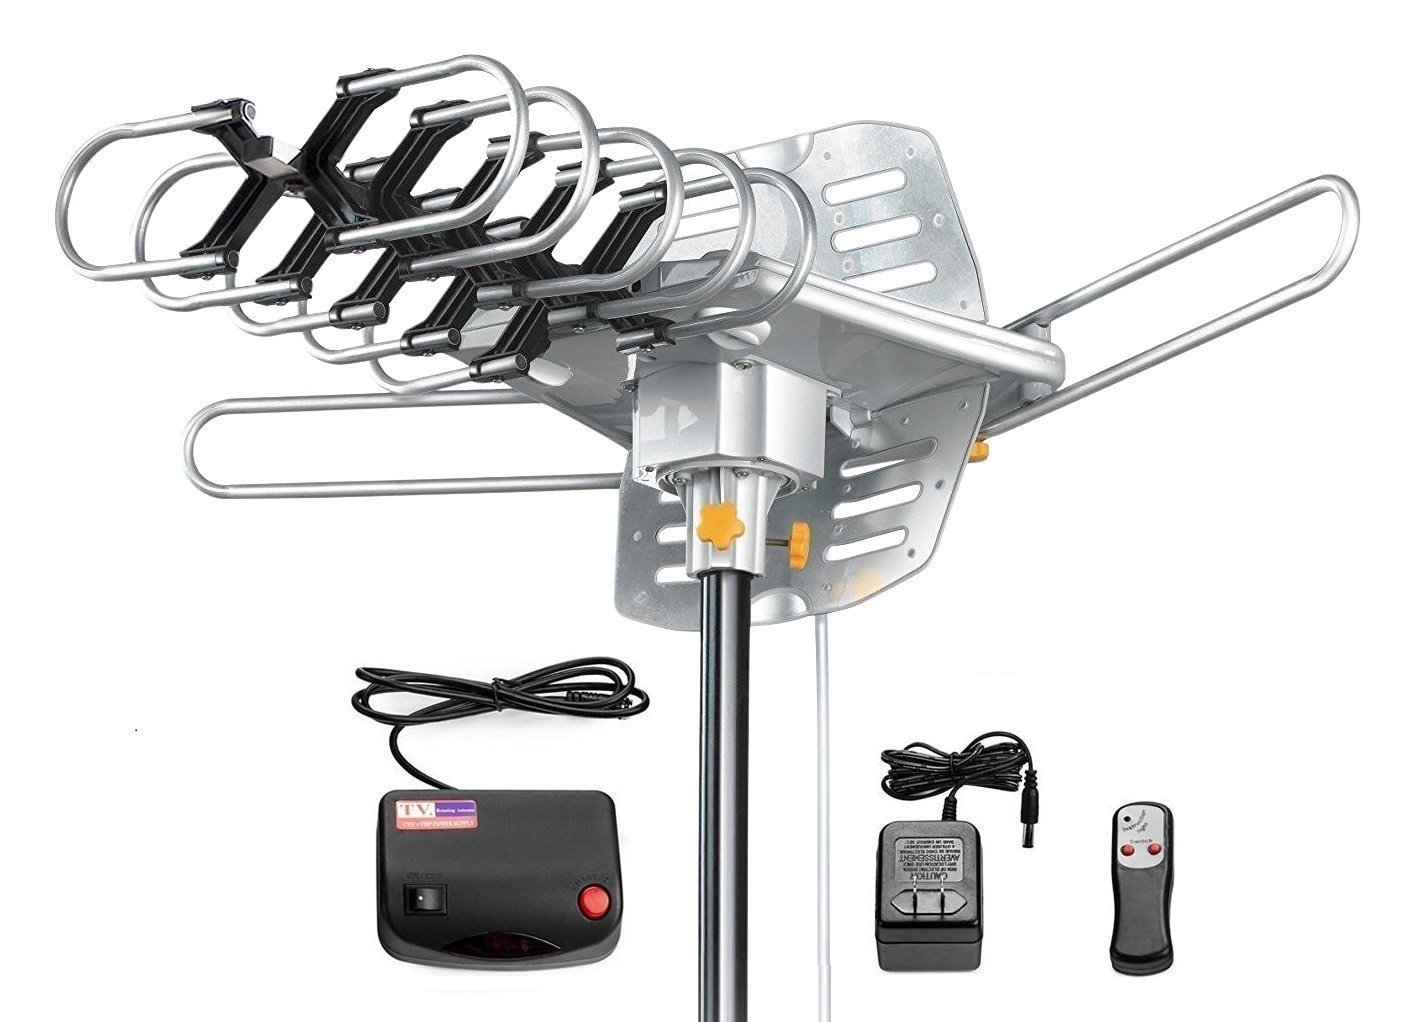 Tree New Bee Amplified Outdoor HDTV Antenna – 150 Miles Range